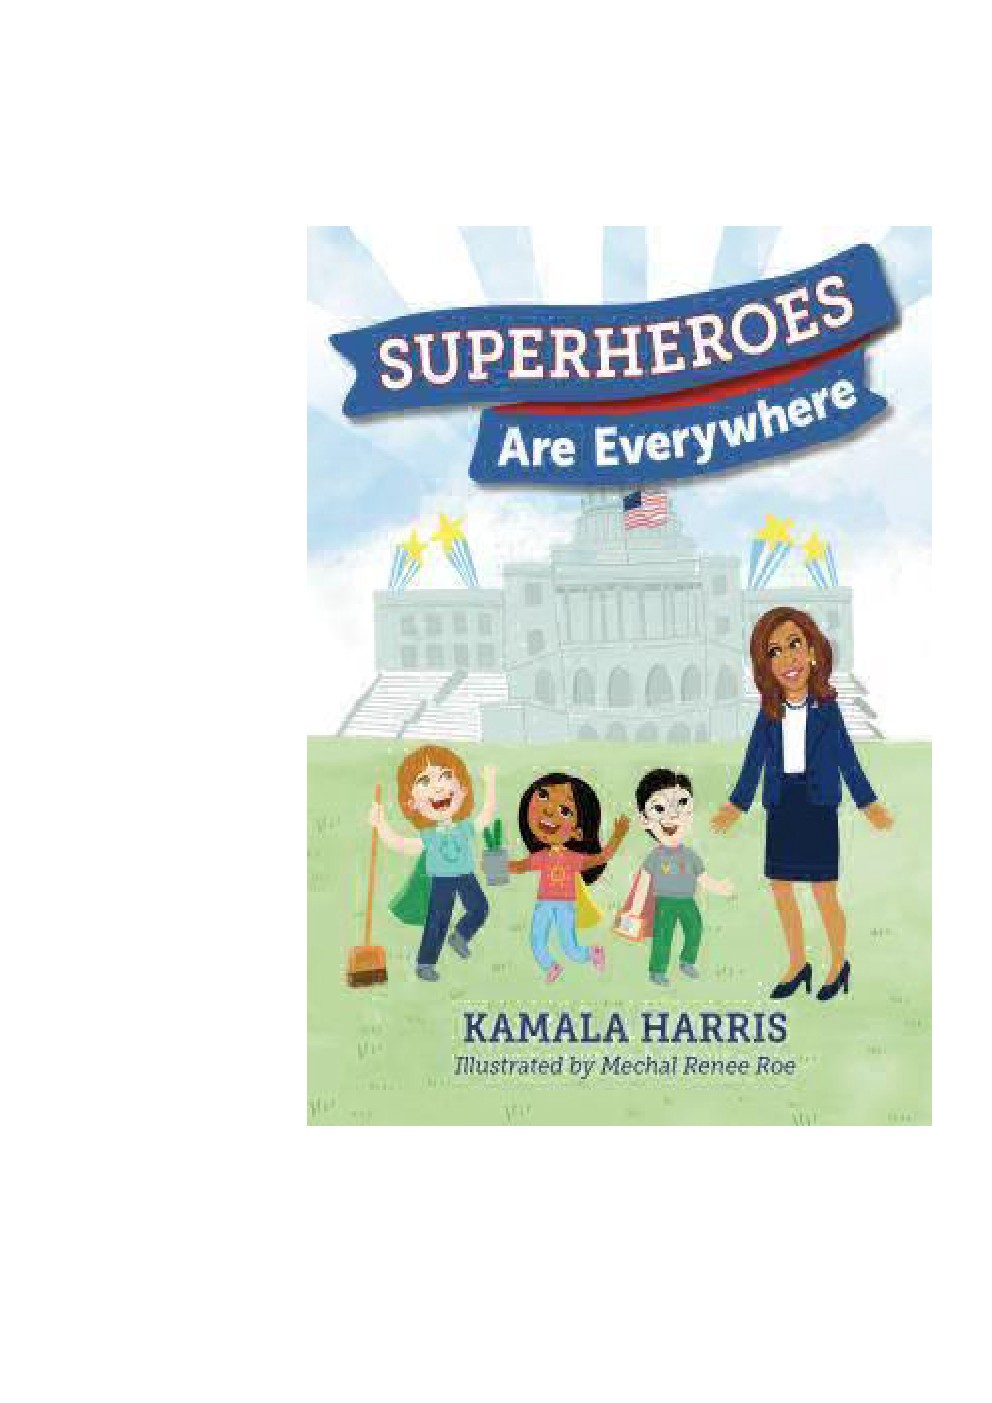 D O W N L O A D P D F By Kamala Harris Superheroes Are Everywhere By Siforode Medium